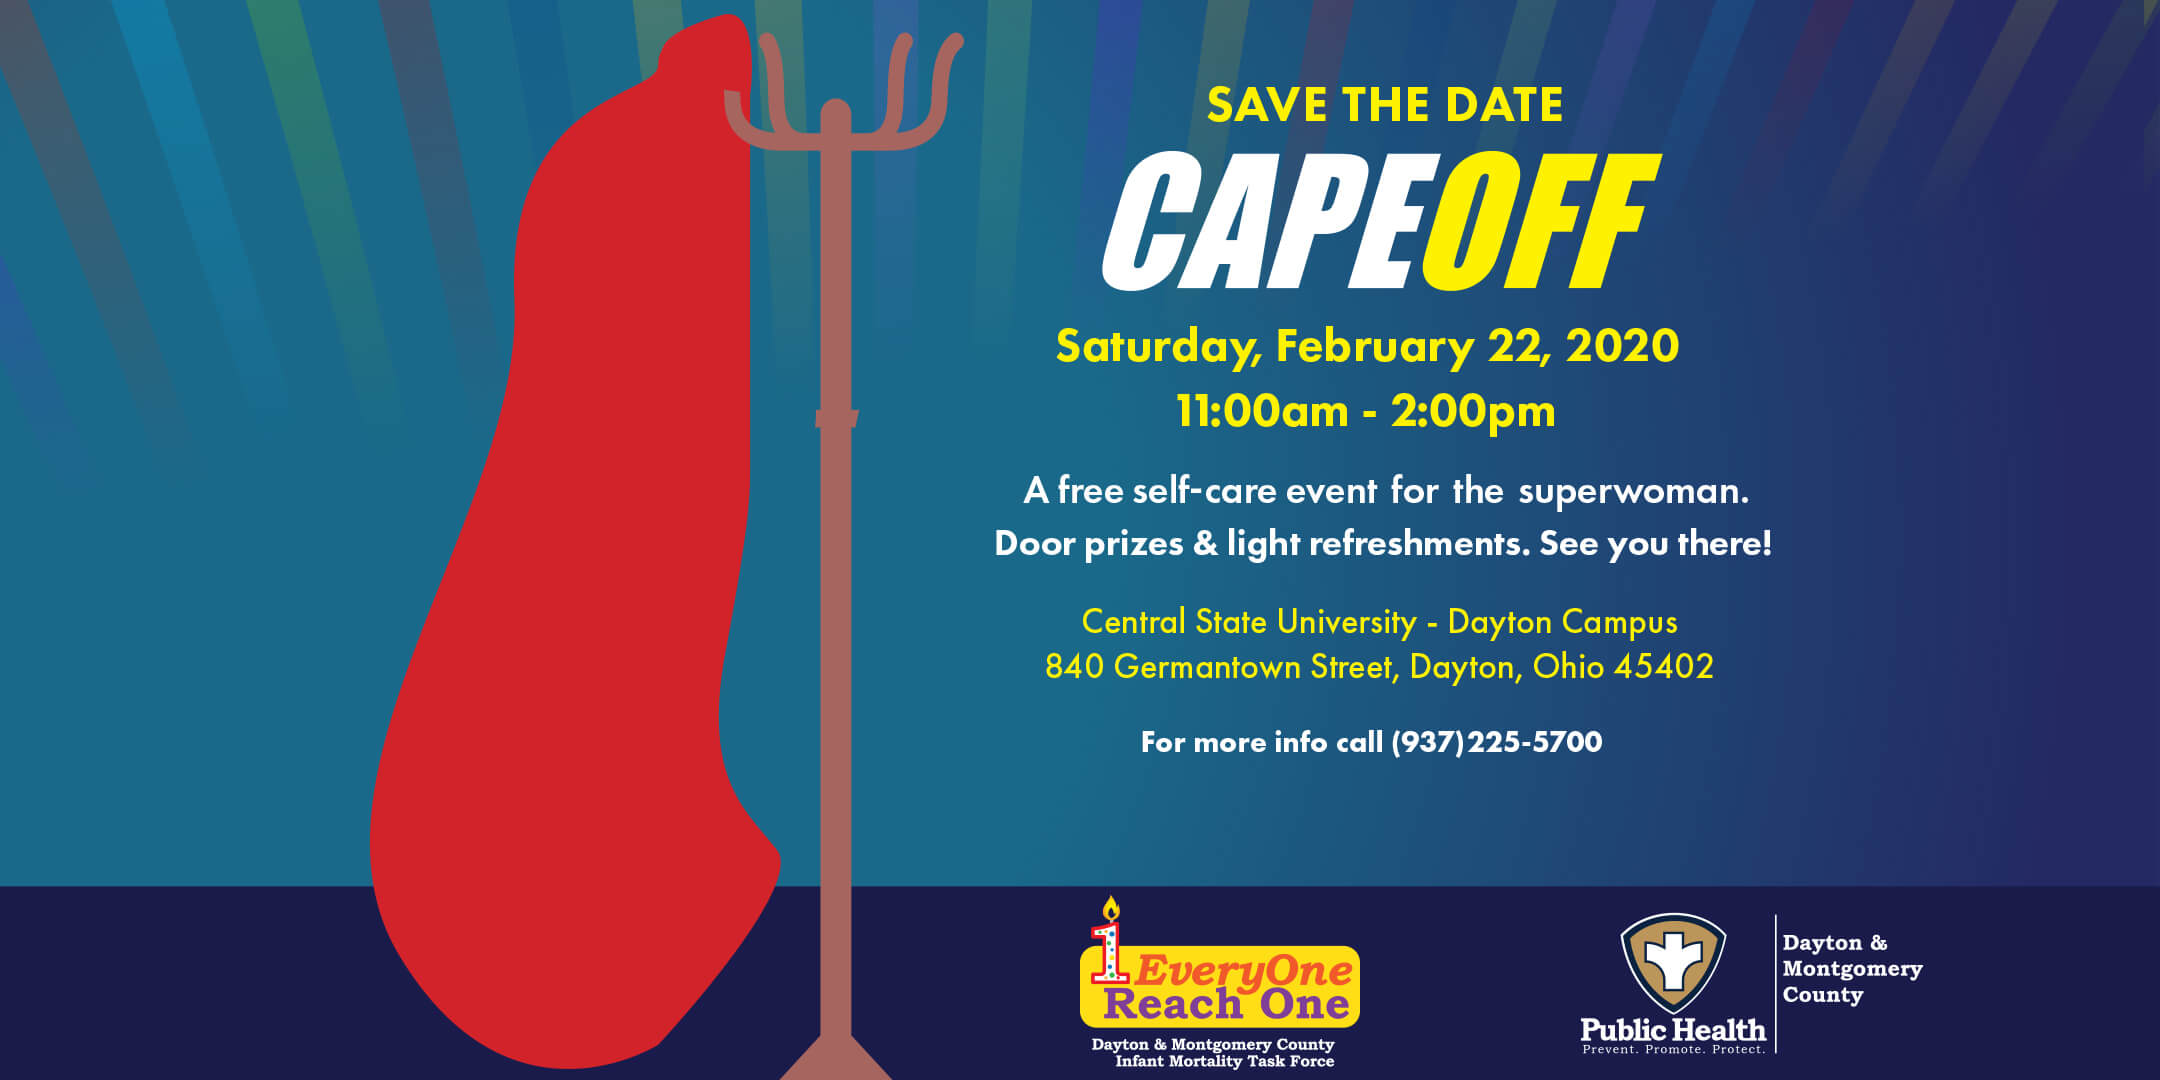 Cape Off - A Self Care Event for the Superwoman